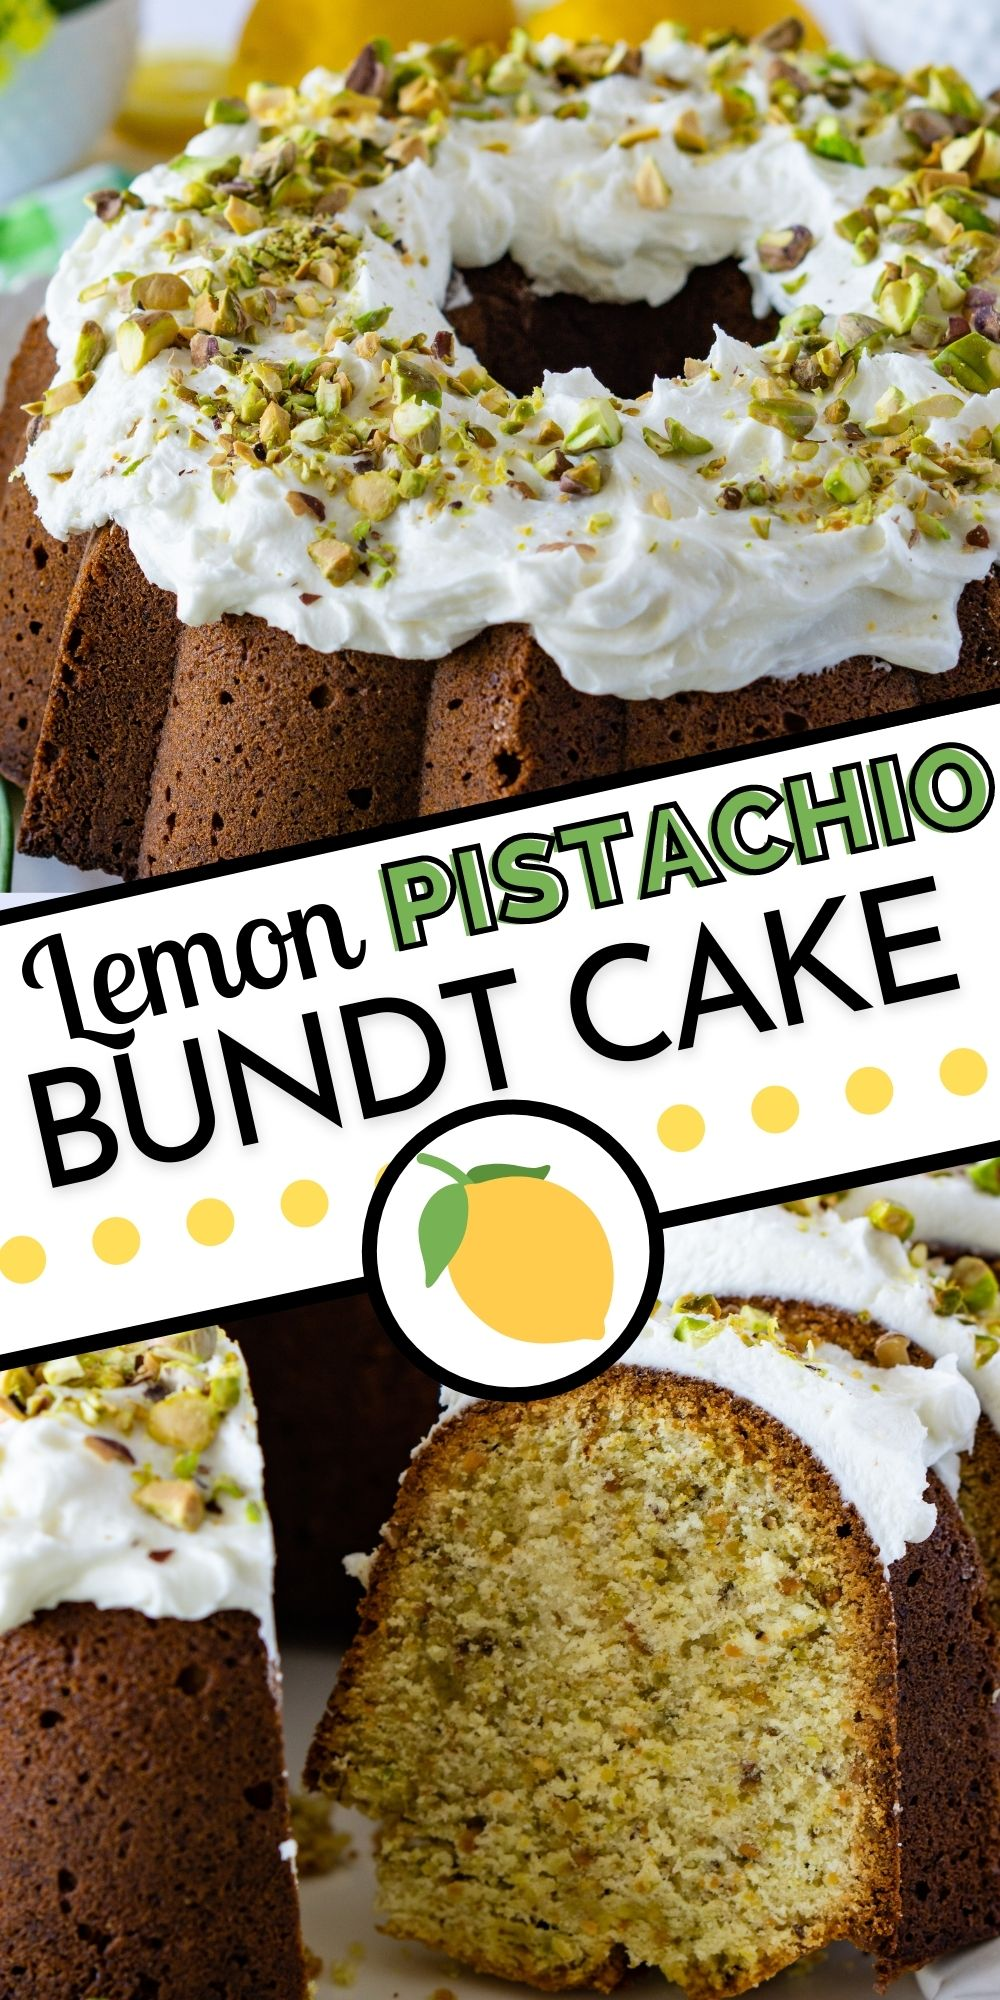 This Lemon Pistachio Bundt Cake recipe is made completely from scratch. It's dense, buttery, and packed with pistachios and zesty lemon flavor. via @foodfolksandfun